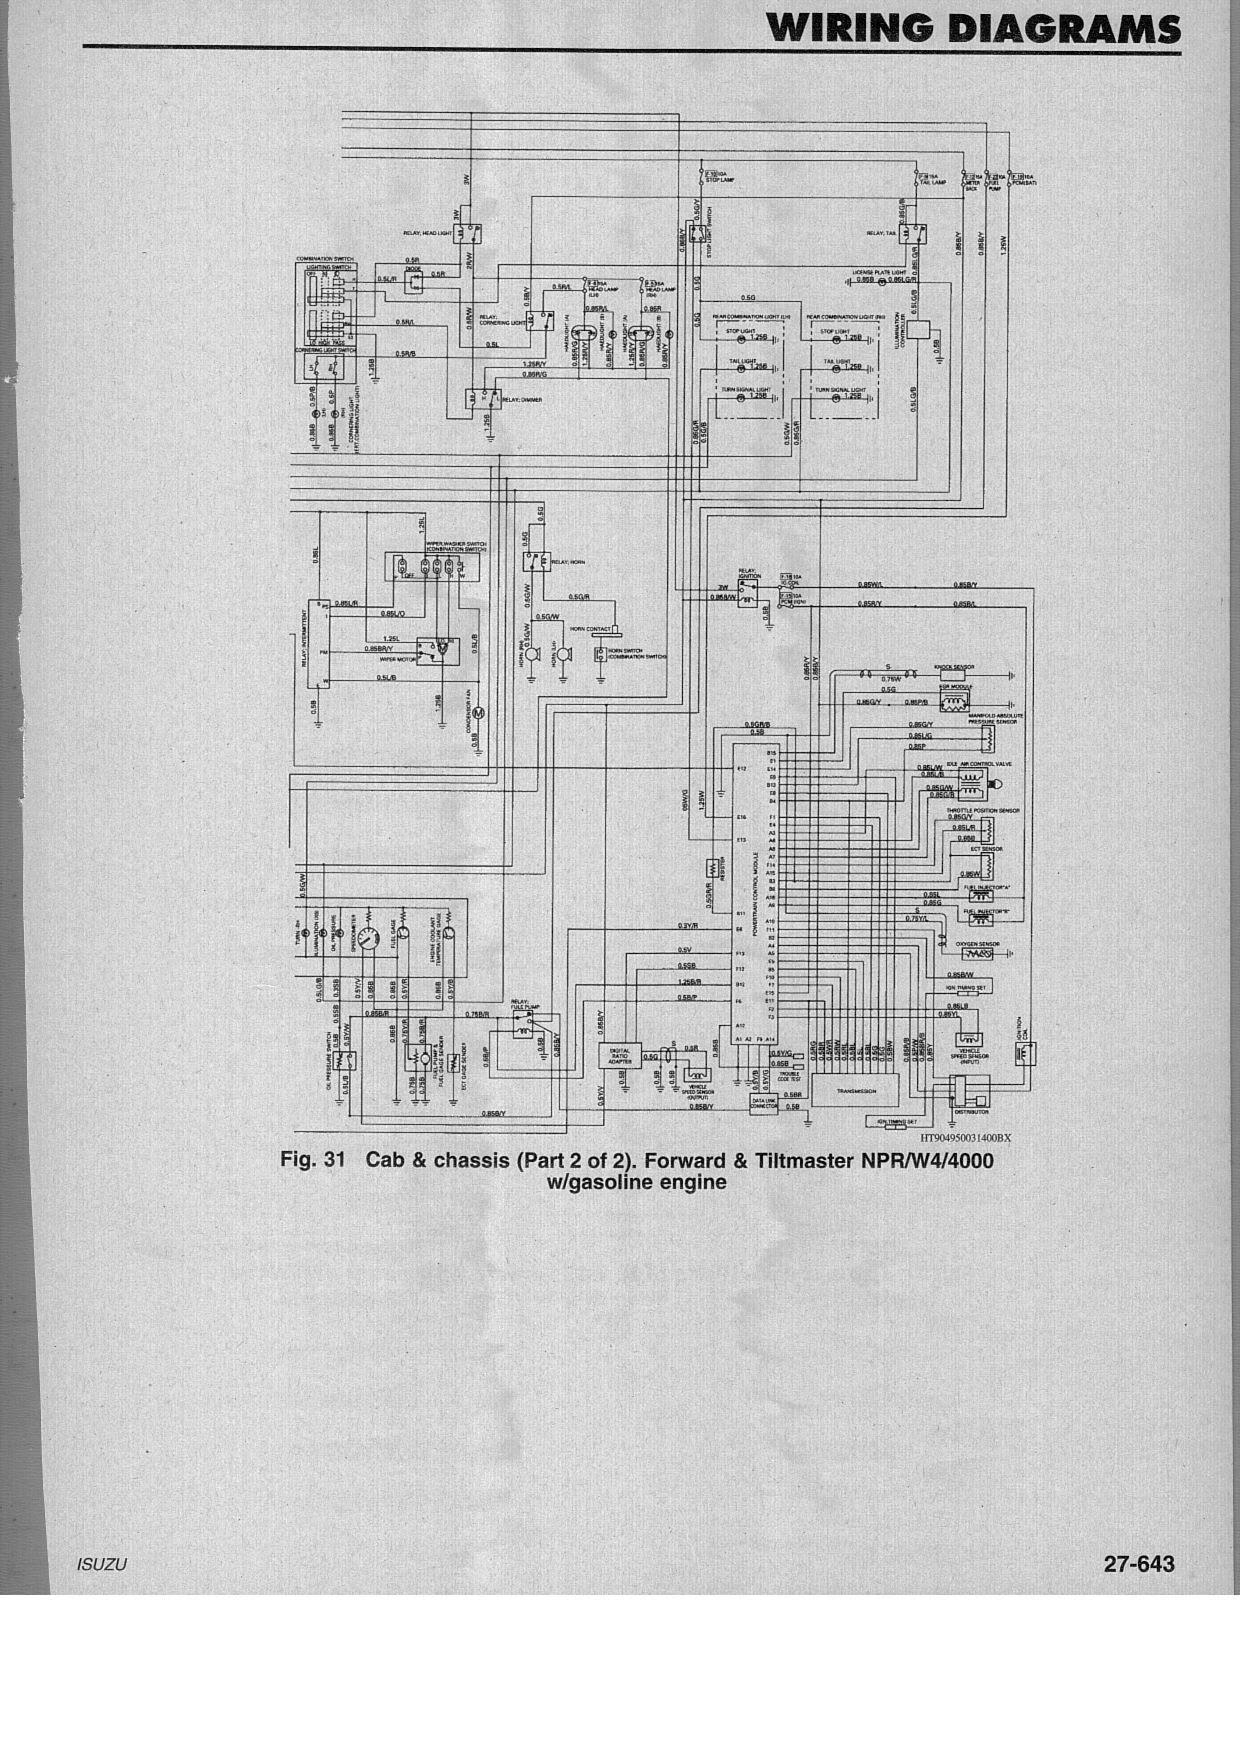 2009 Isuzu Npr Wiring Diagram Full Hd Version Wiring Diagram Mbog Diagram Emballages Sous Vide Fr